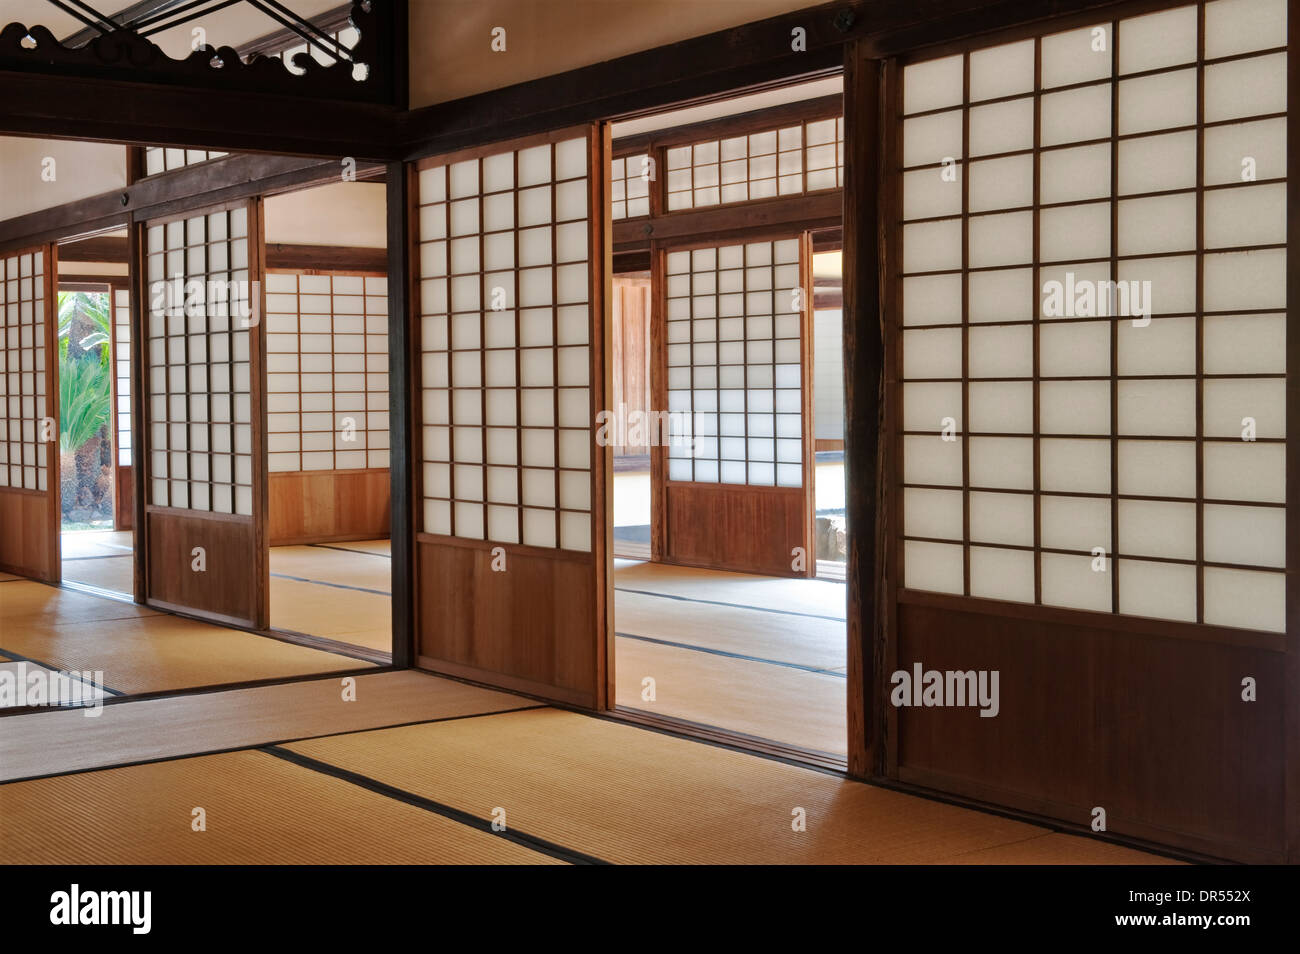 Ritsurin-koen garden, Japan. Sliding screens (shoji) in the interior of the Kikugetsutei tea house (the Moon Scooping Stock Photo